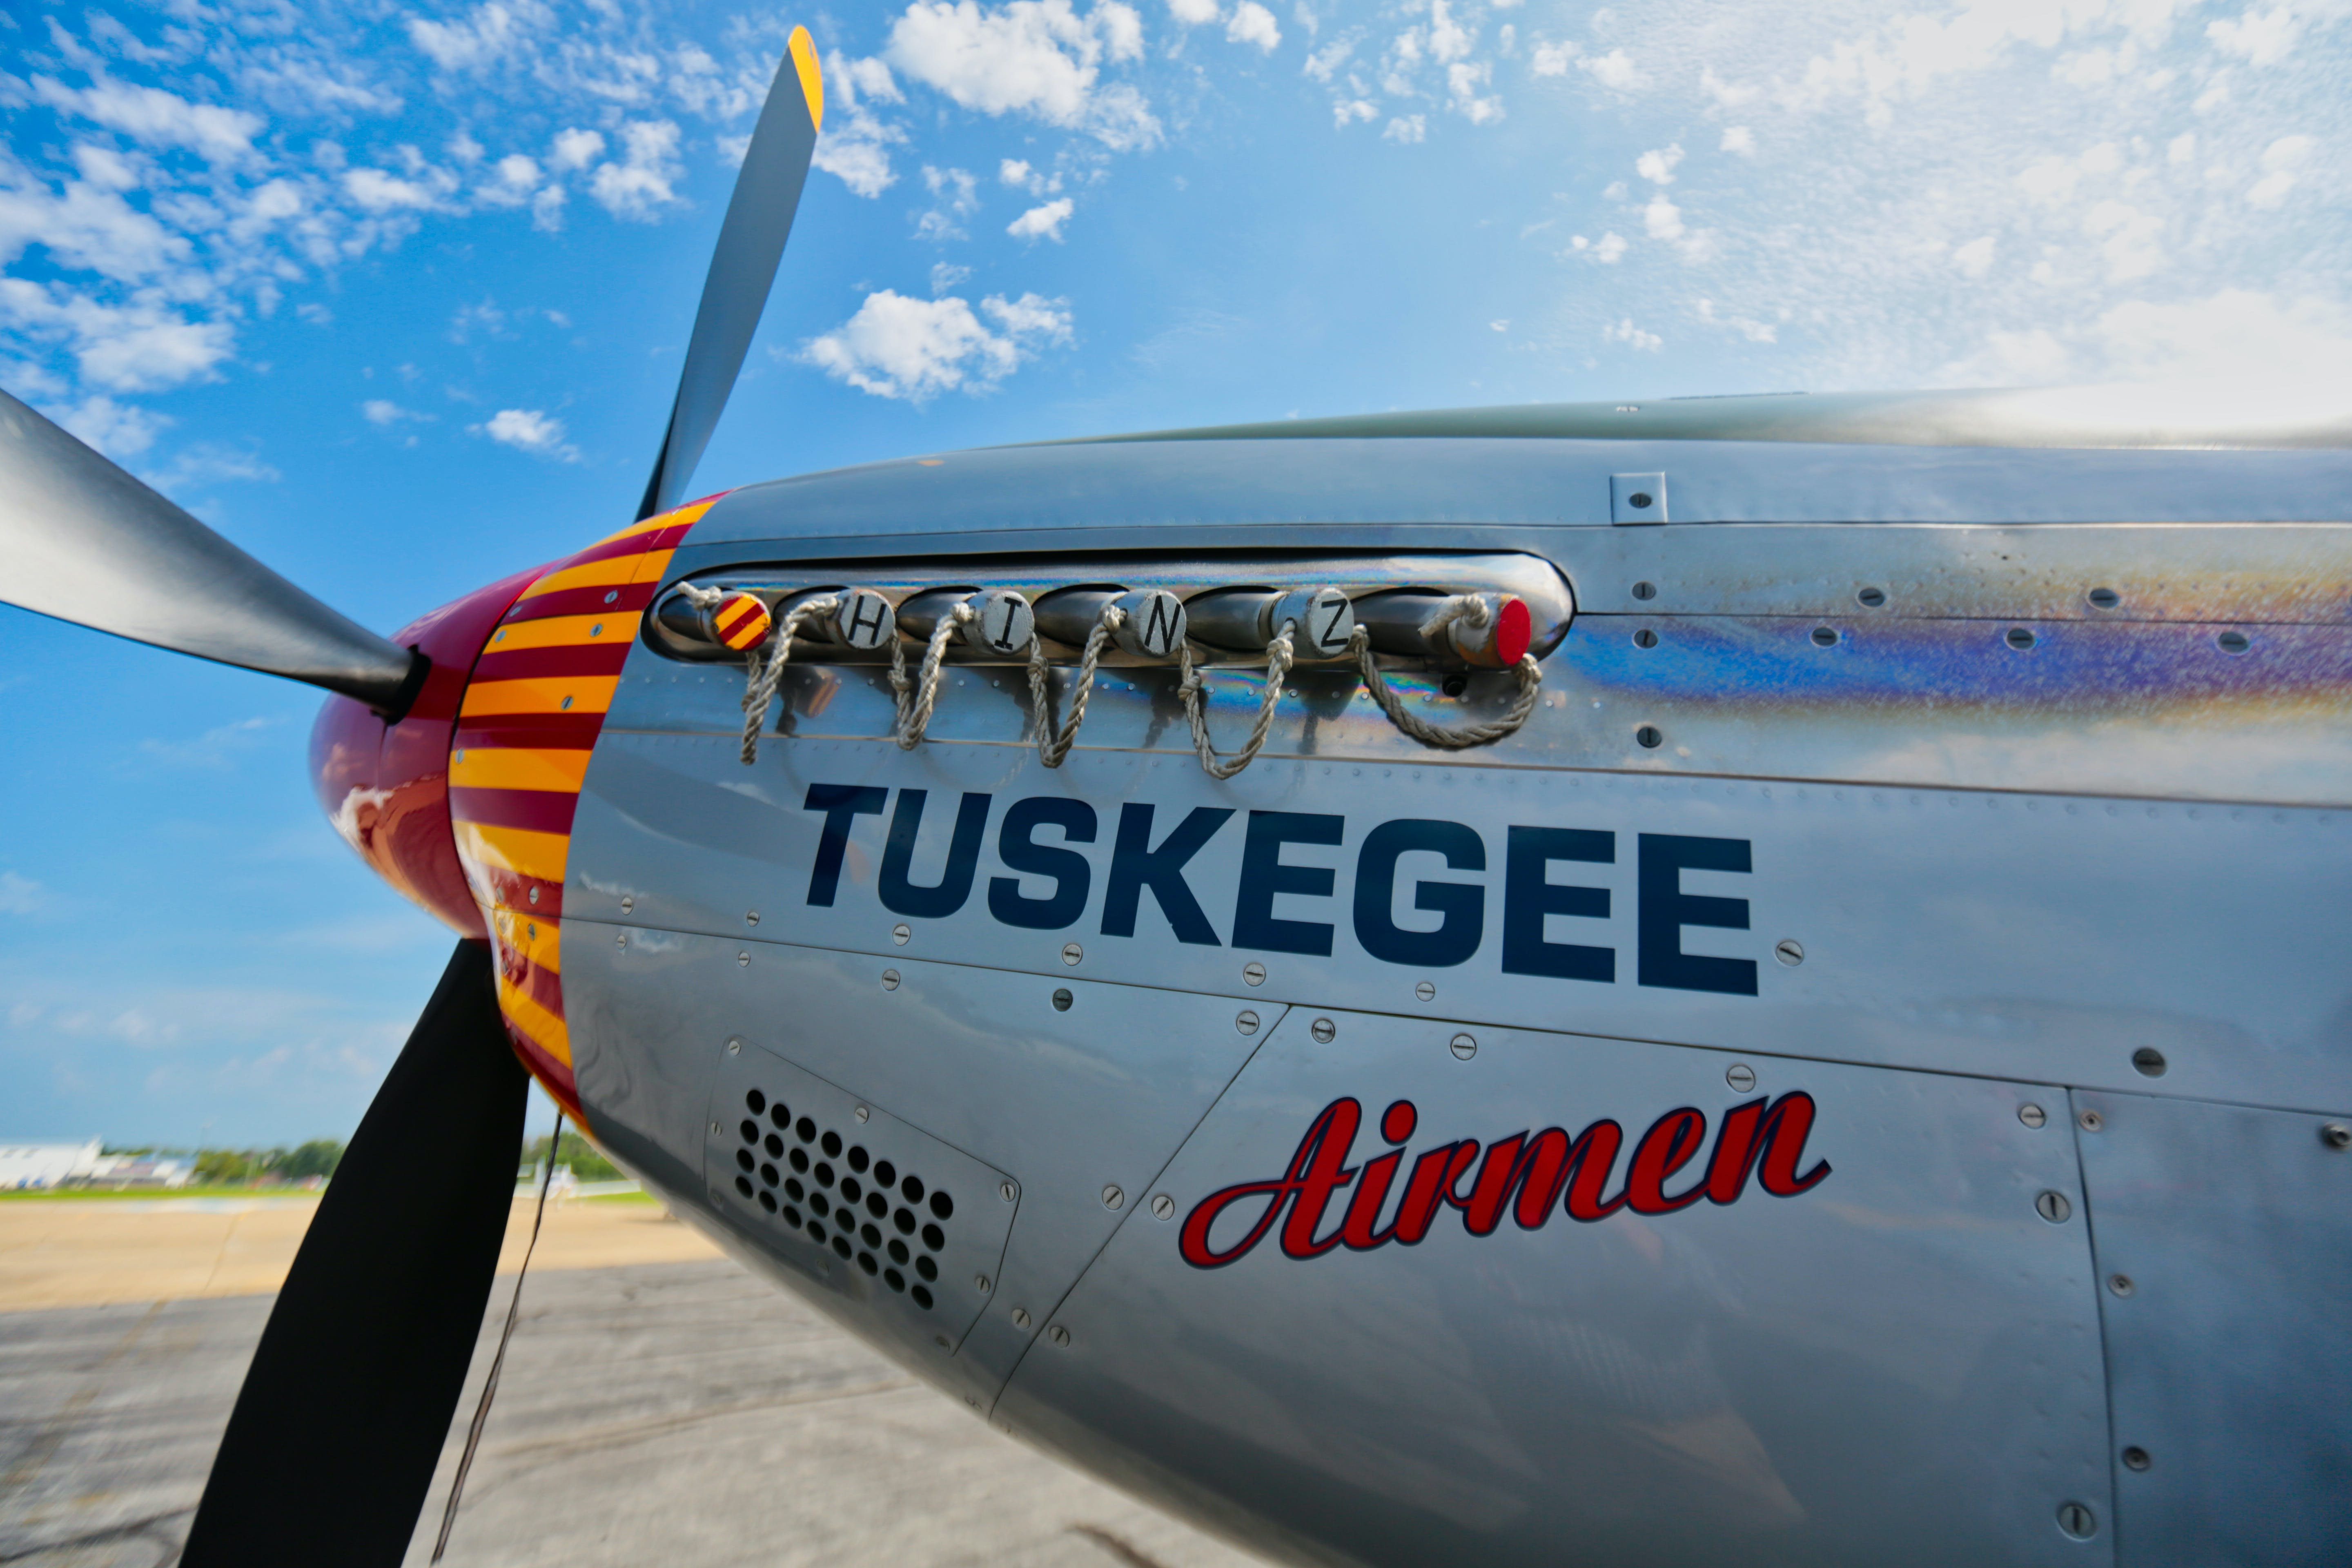 Gray Tuskegee Airmen Airplane Under Blue and White Cloudy Skies at Daytime